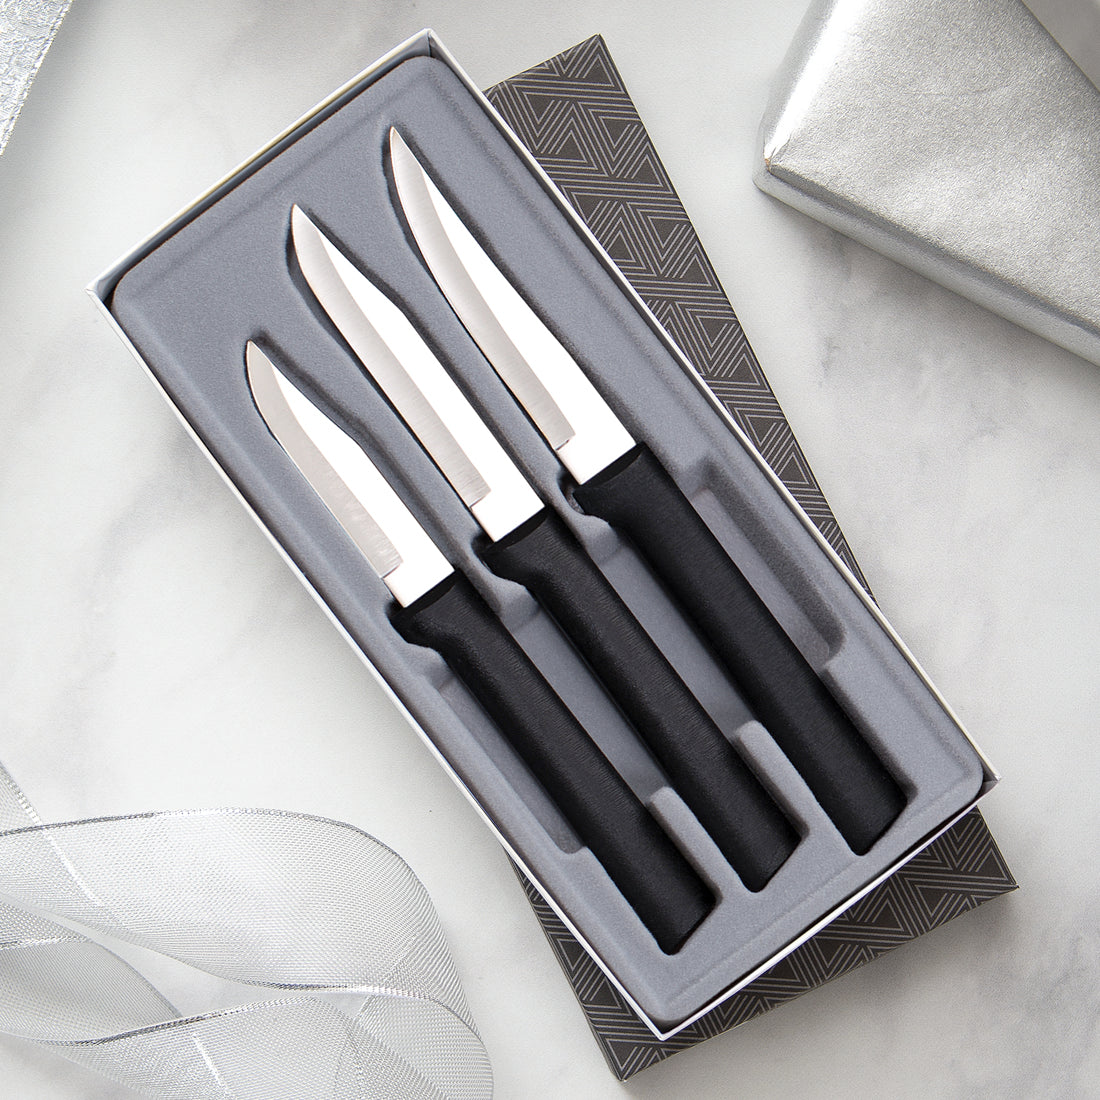 Paring Knives Galore Gift Set with silver handles includes three paring knives in gift box.